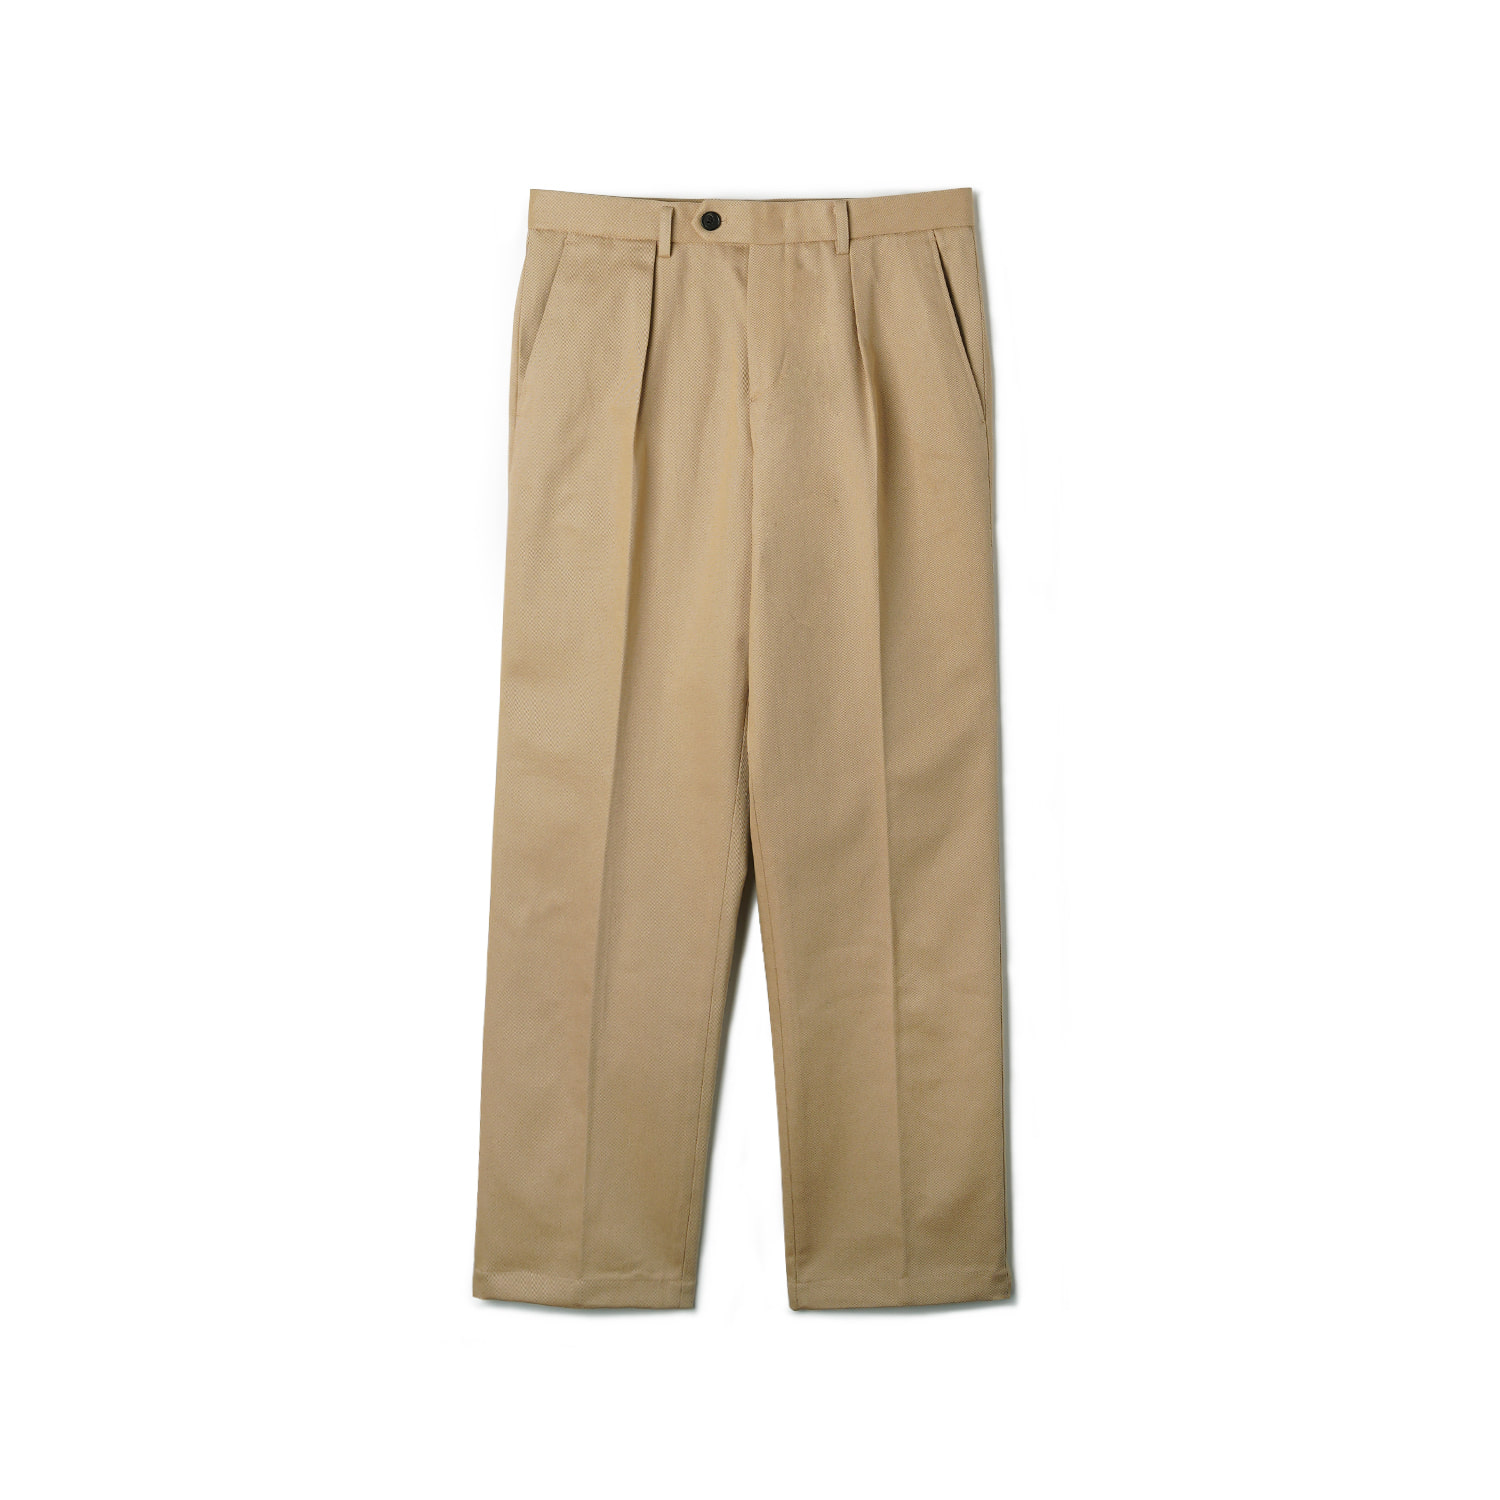 OPD Cotton One-Tuck Pants - BeigeBANTS(반츠)